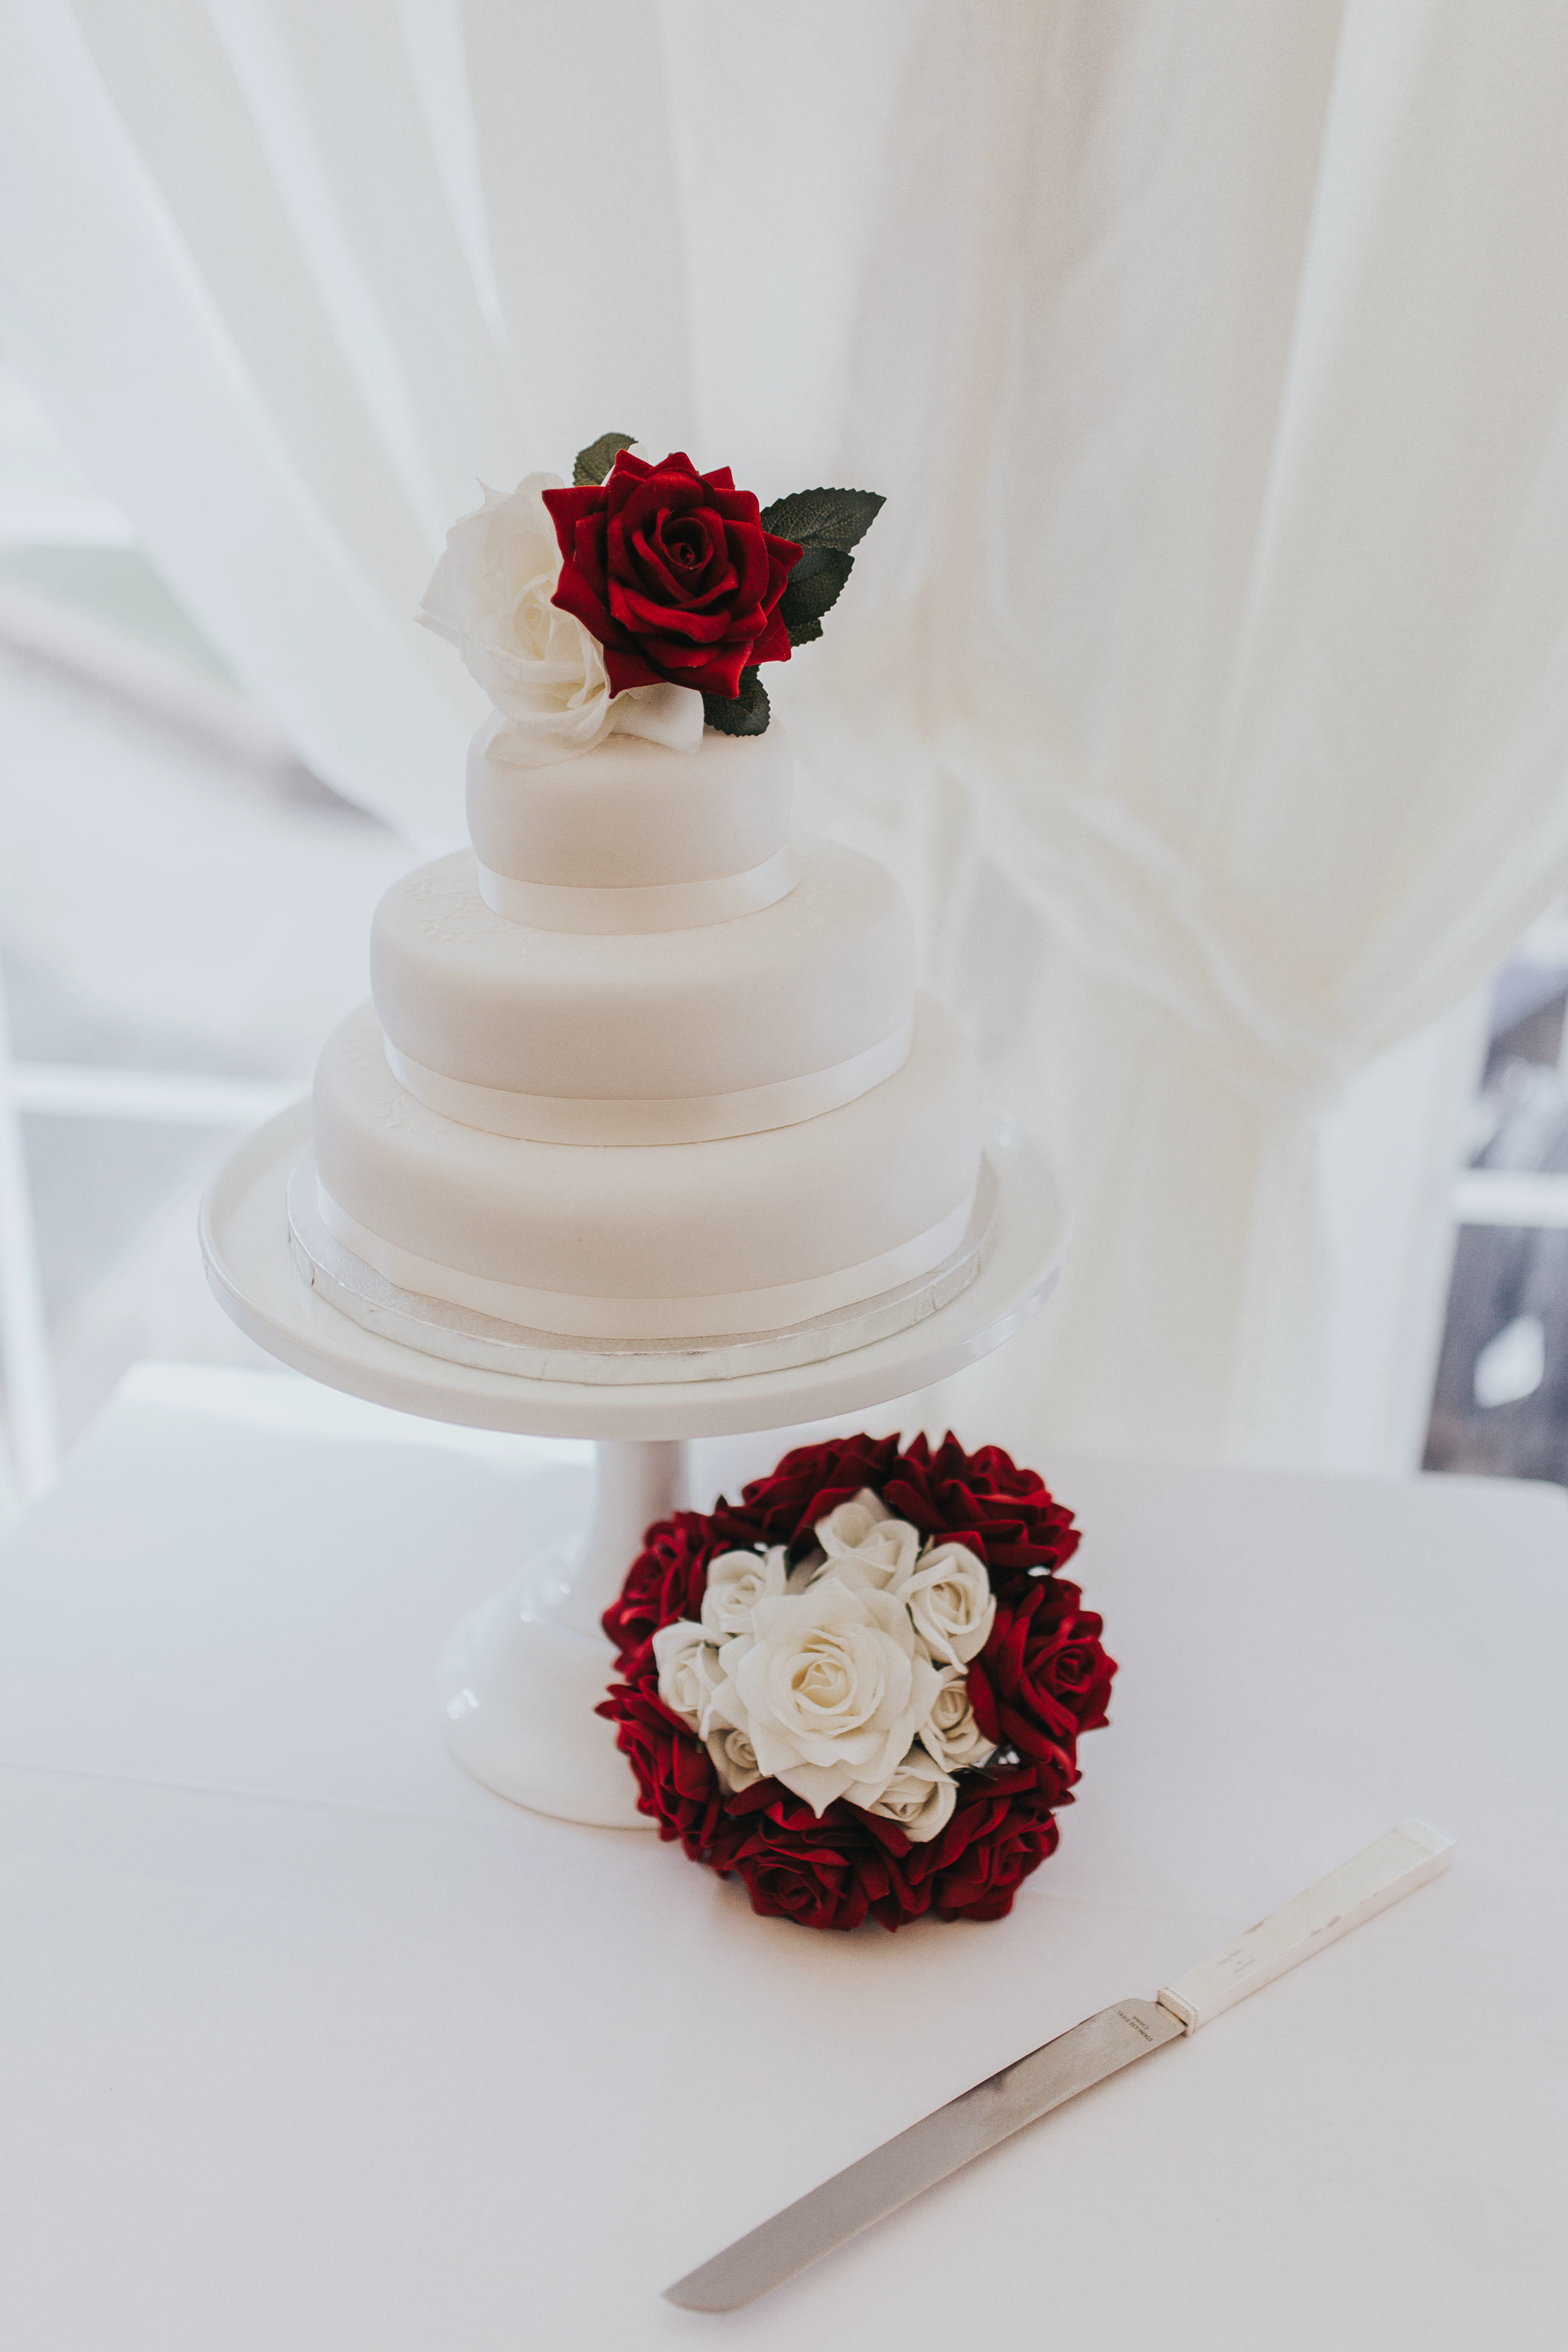 m&s wedding cakes small plain simple cakes red rose